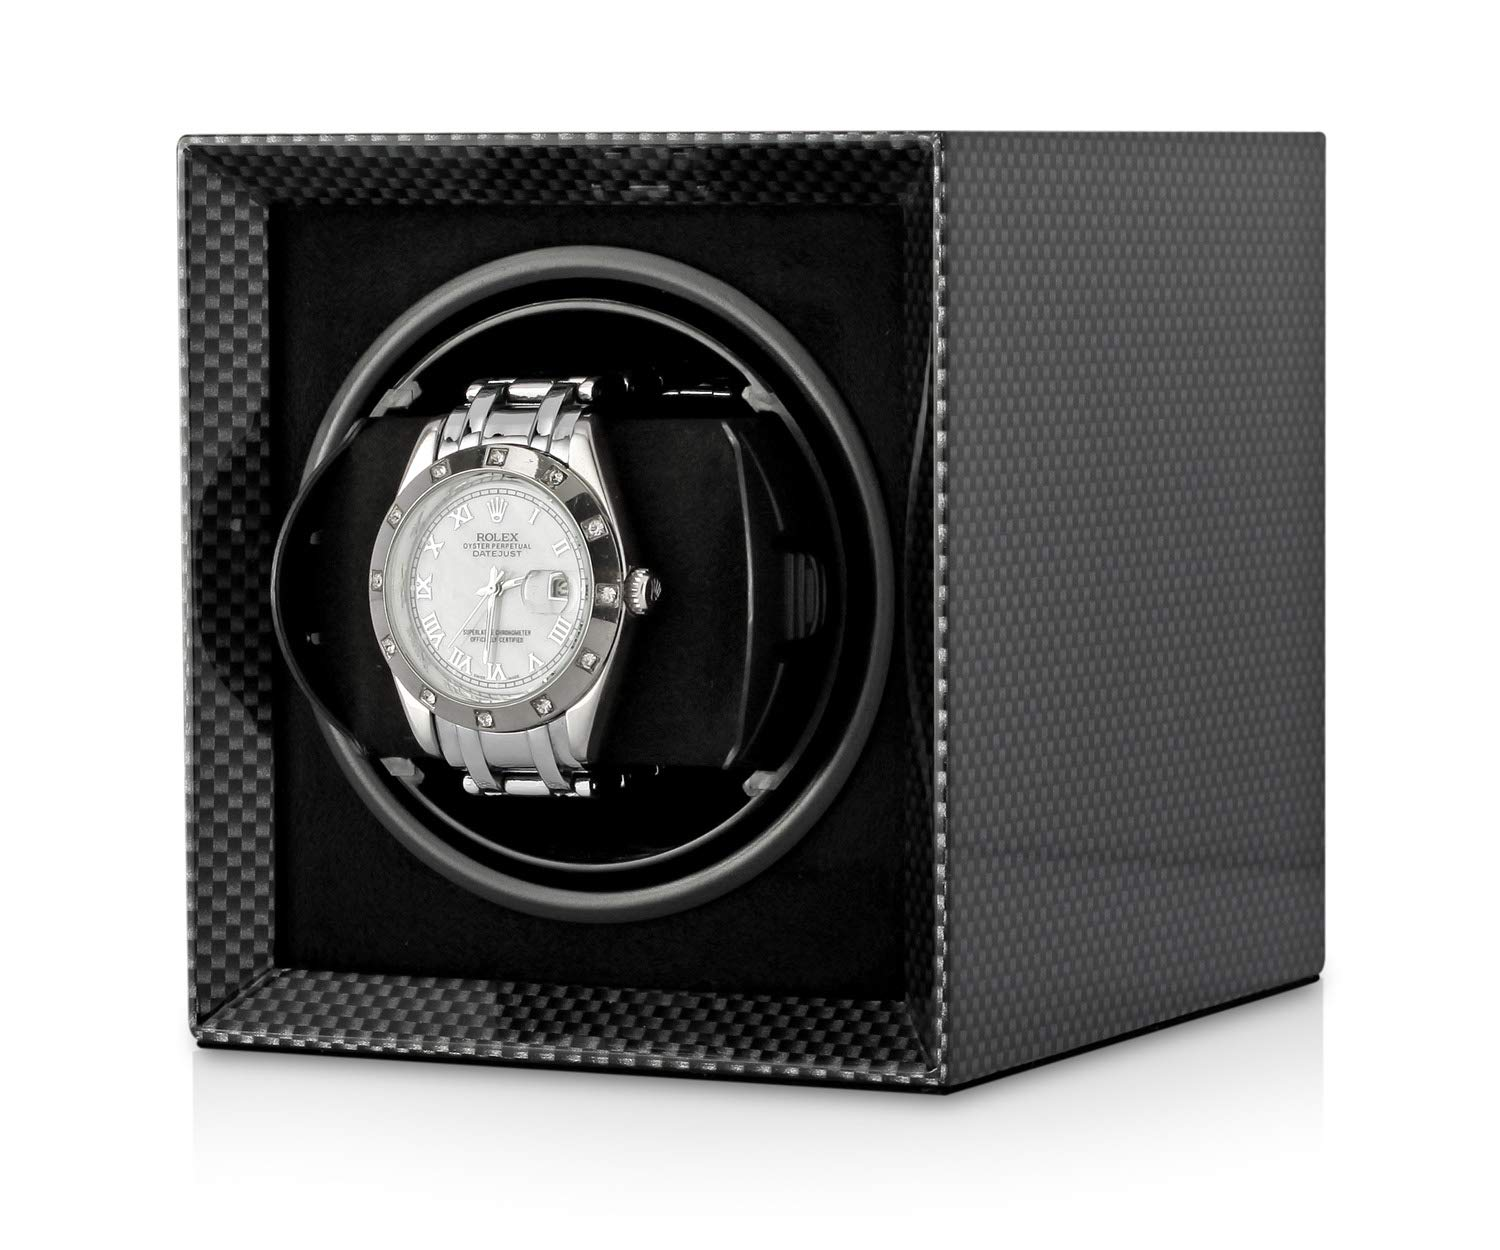 Watch Winder Box for Winding Single Automatic Watch with LCD Display and Rechargeable Battery for All Watch Brands in a Compact Size (Carbon)